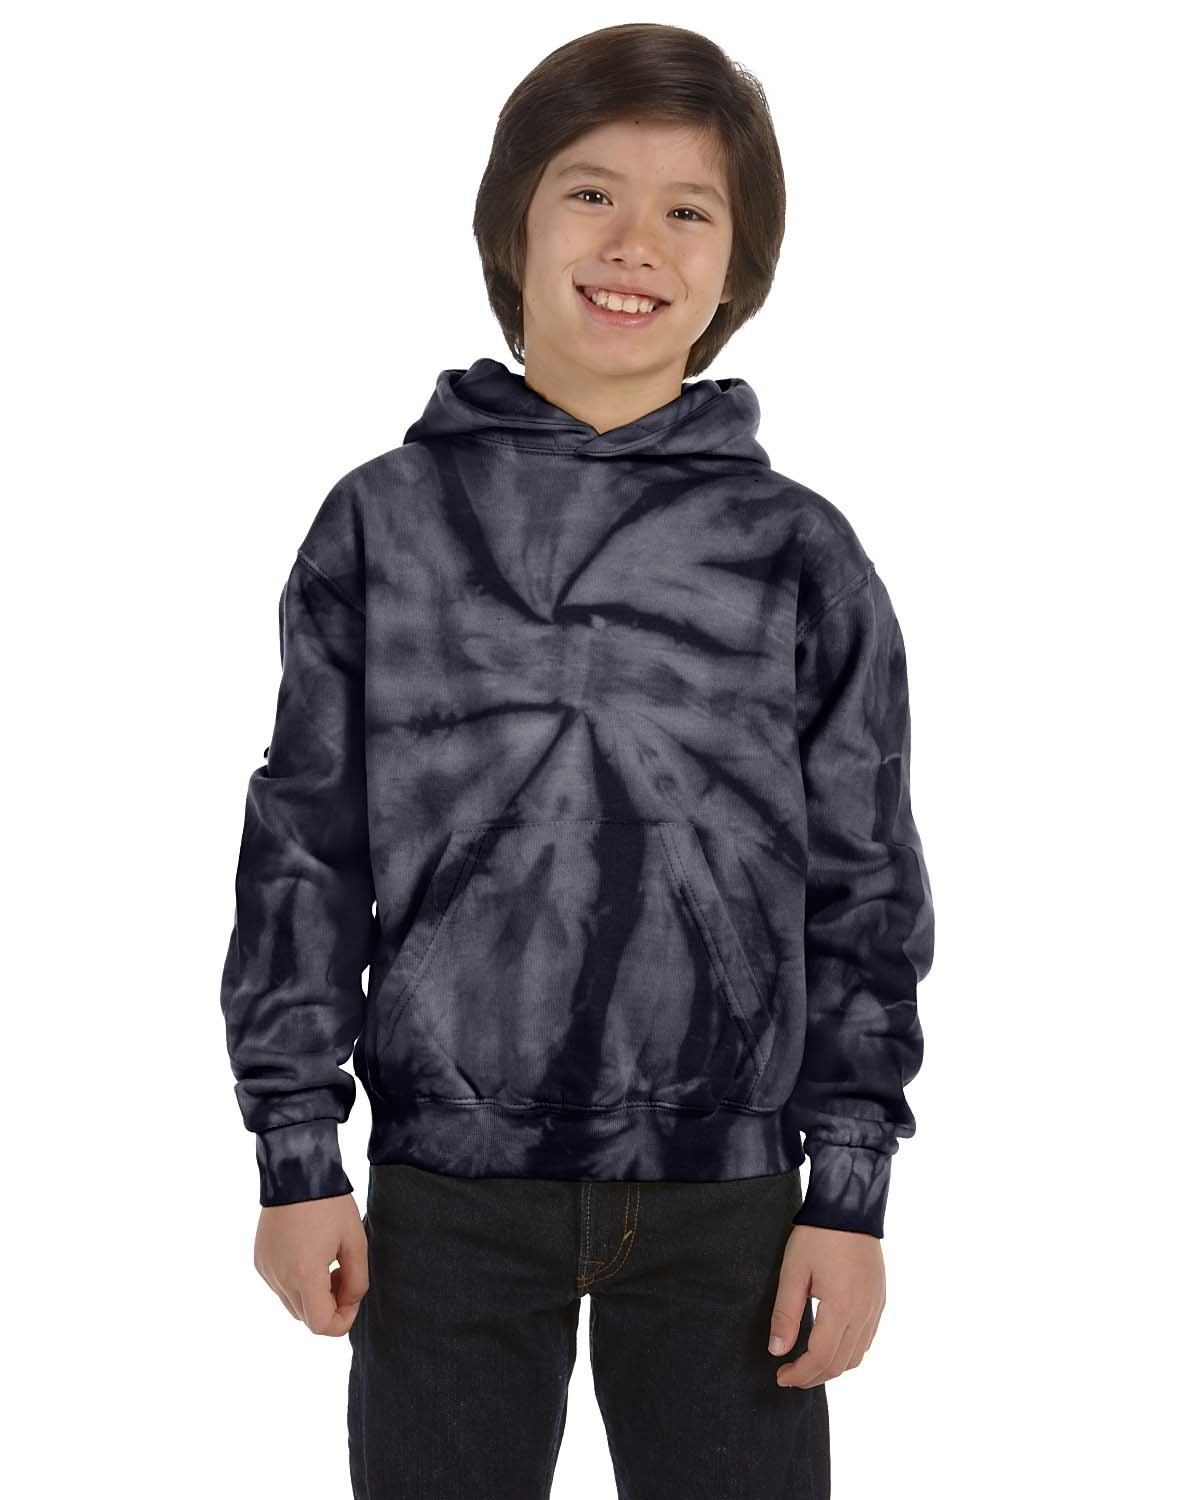 Tie-Dye Youth 8.5 oz. Tie-Dyed Pullover Hooded Sweatshirt SPIDER NAVY